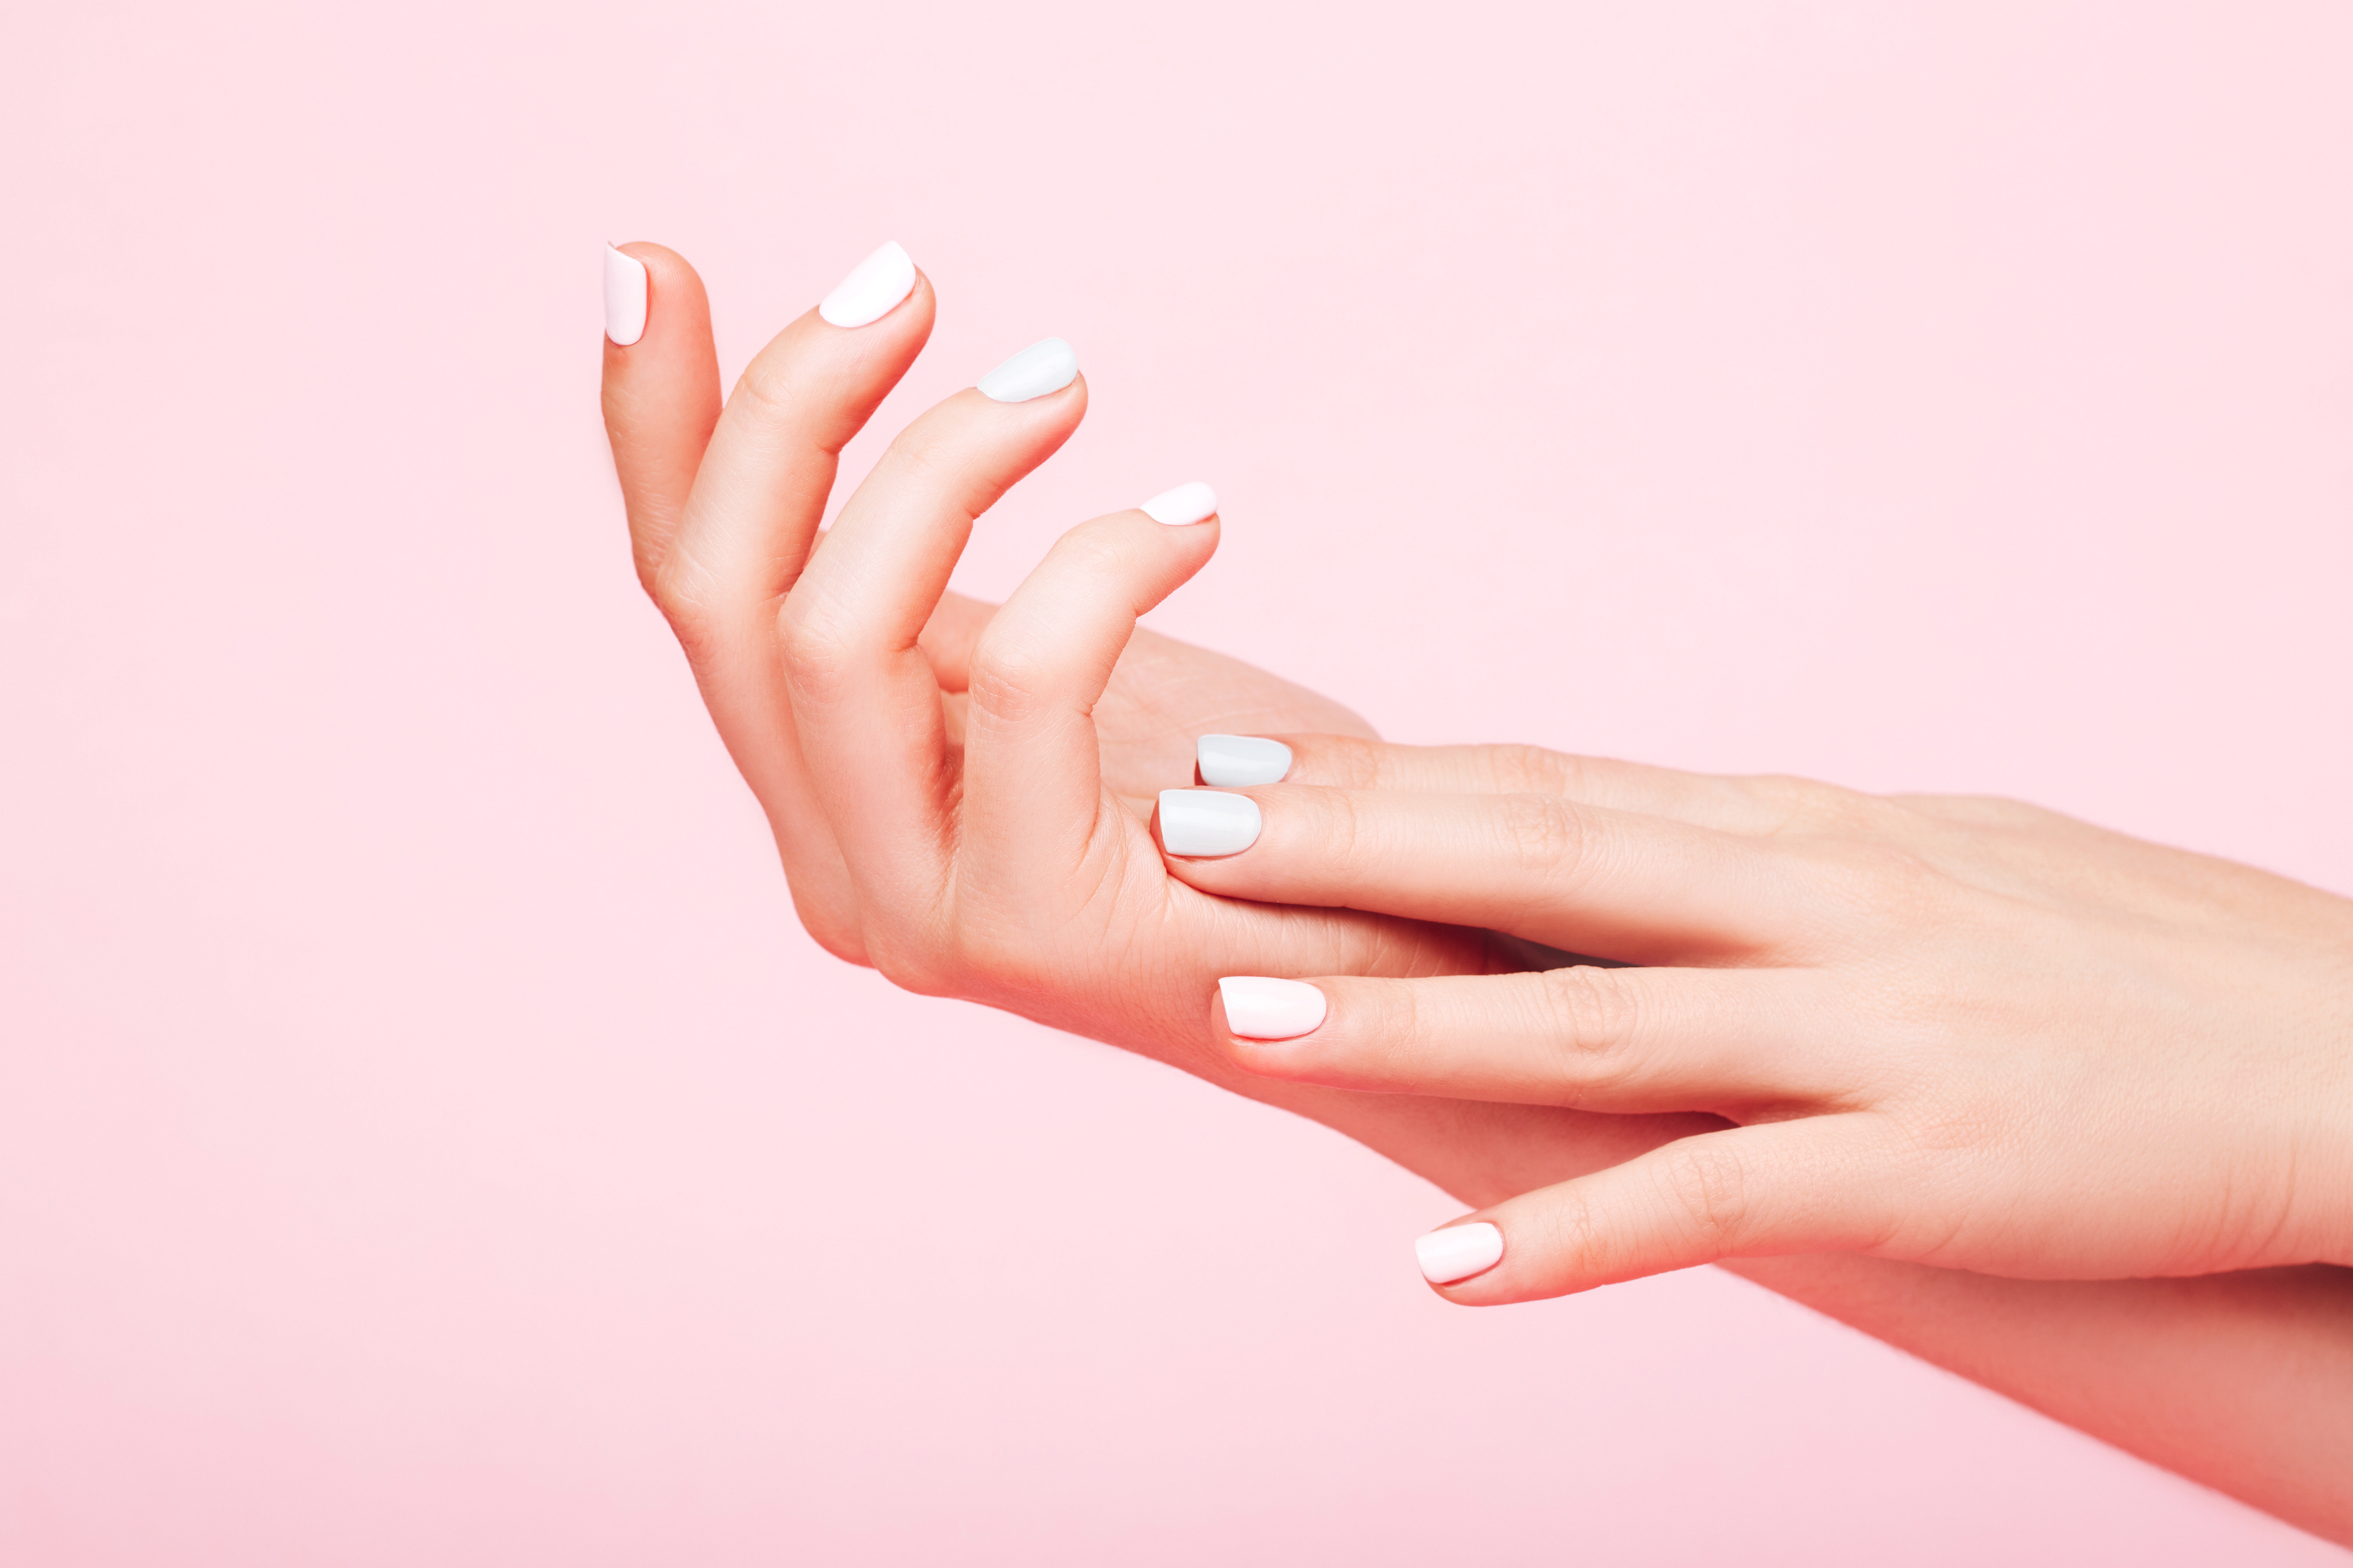 4 Philadelphia Nail Salons for Non-Toxic and Organic Manicures